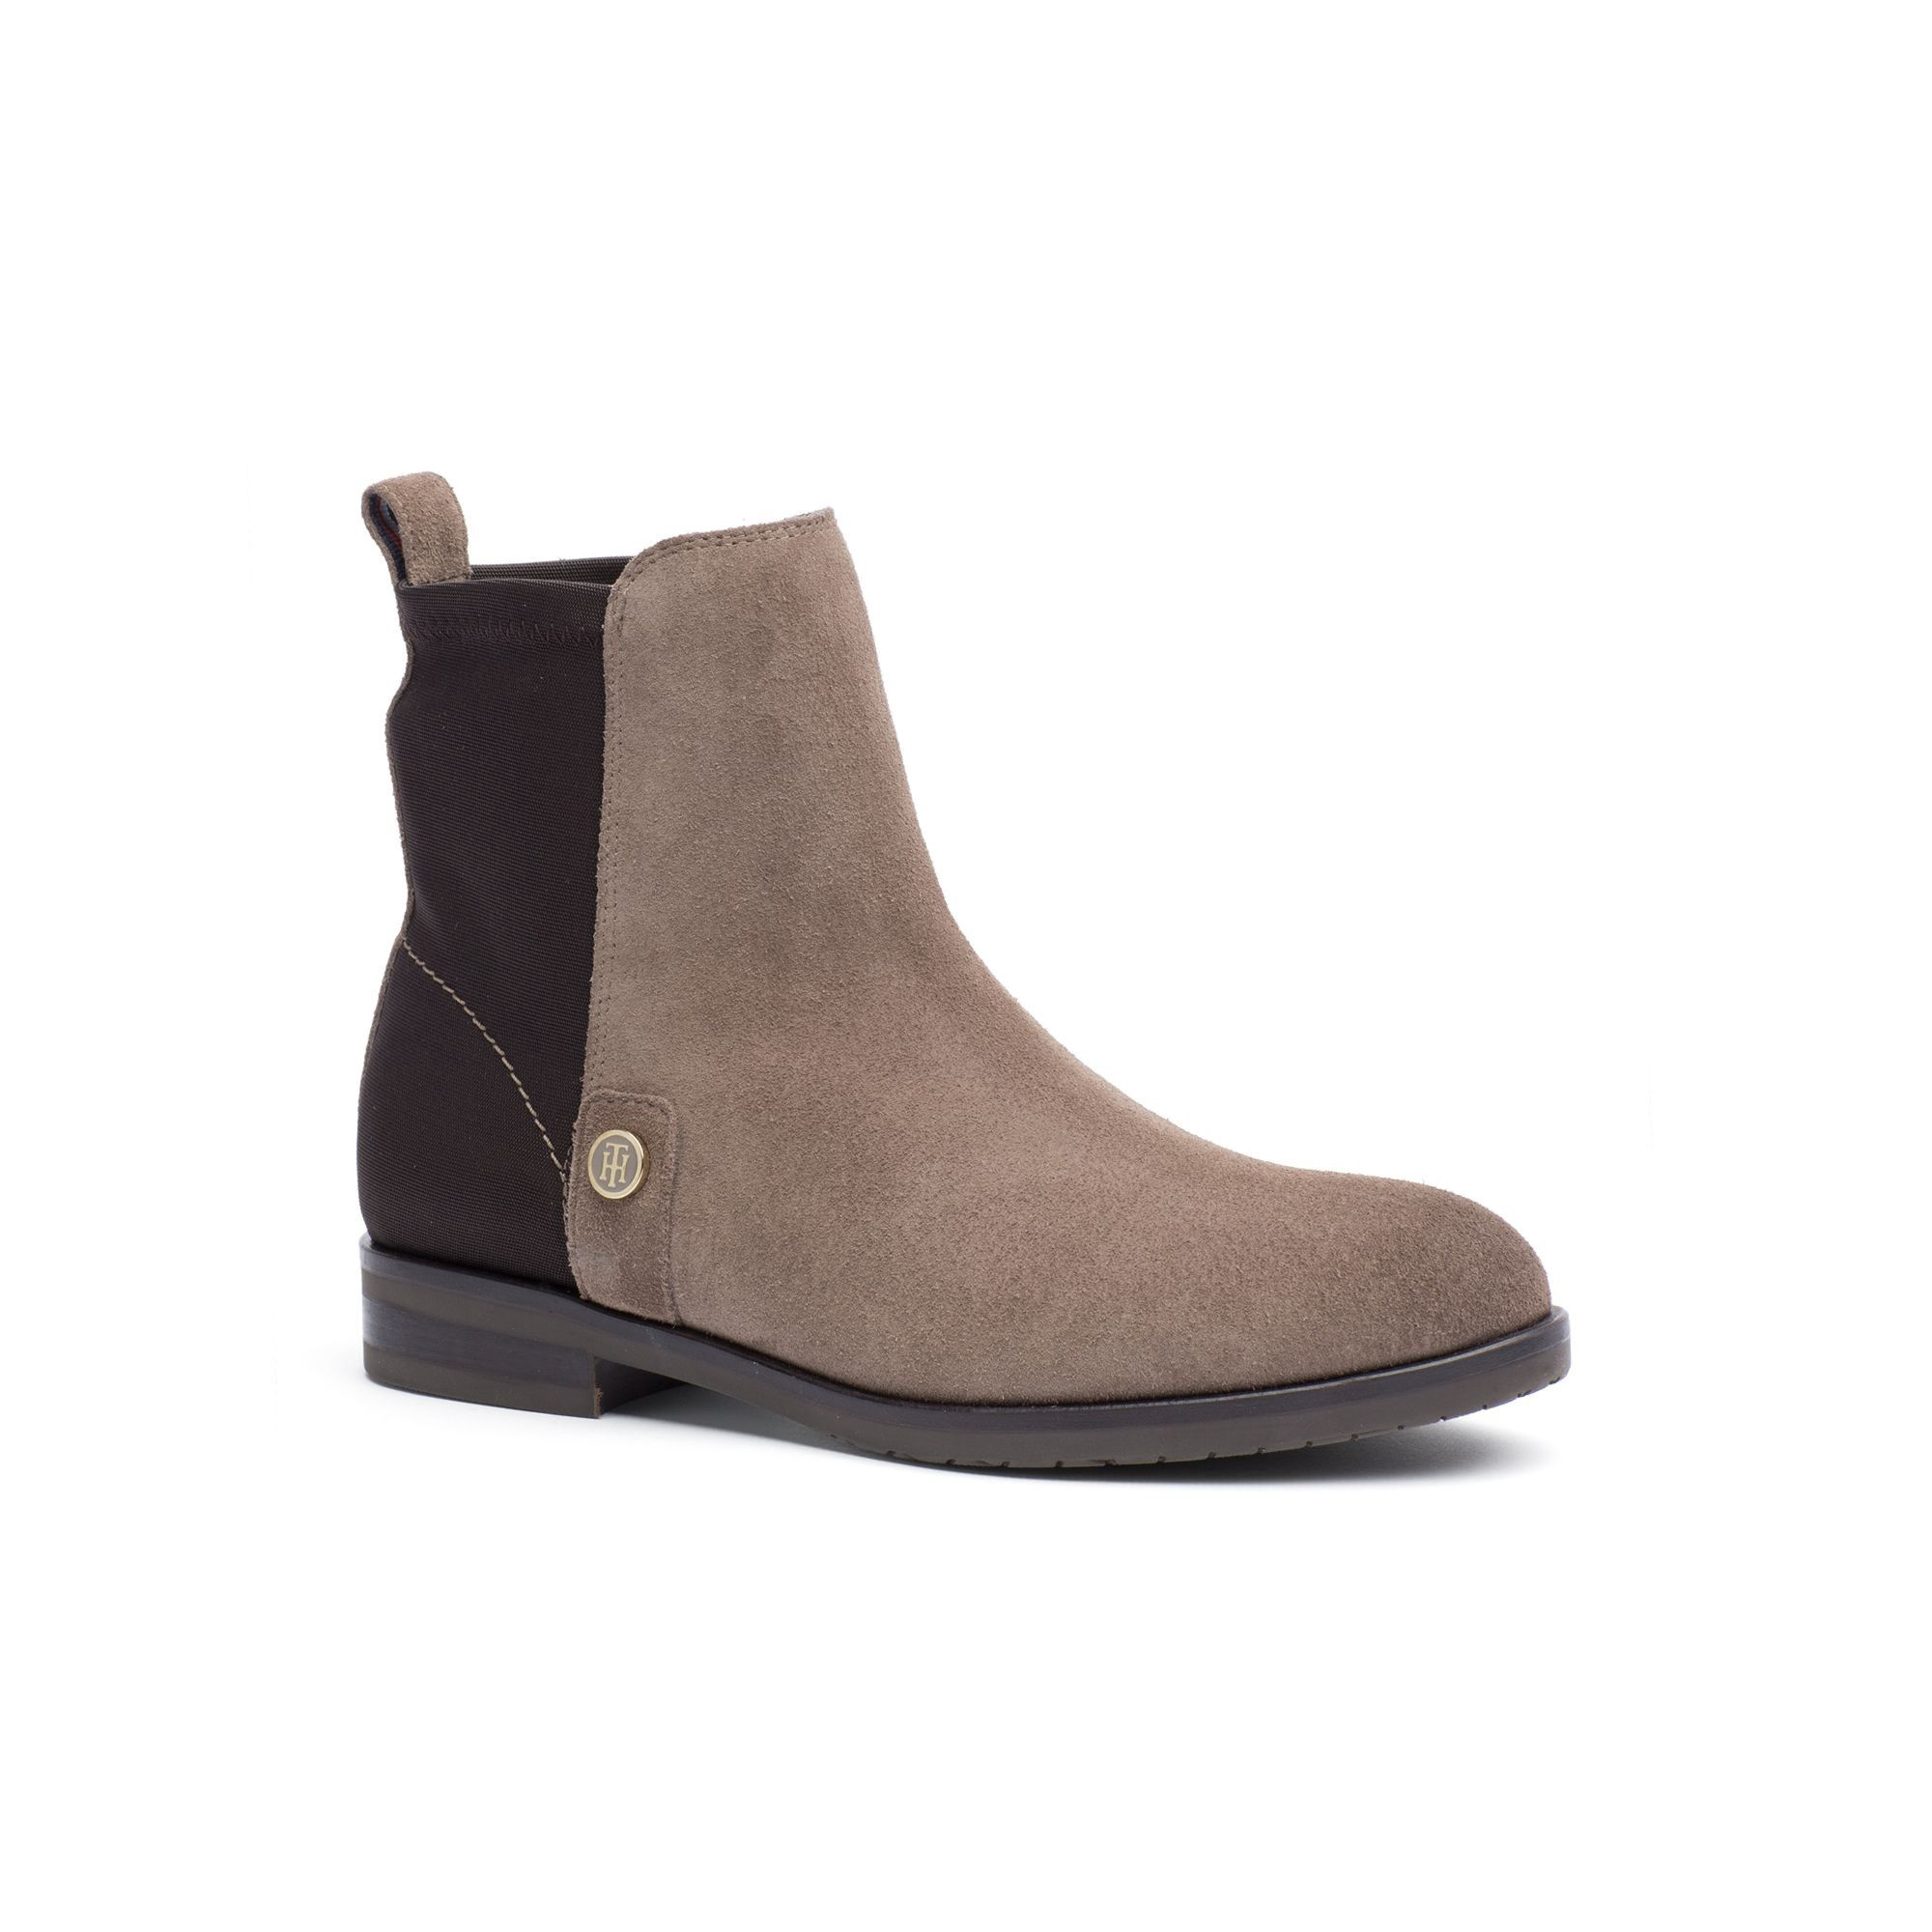 TOMMY HILFIGER MIXED SUEDE ANKLE BOOT - MINK.  tommyhilfiger  shoes   84ca2099a711